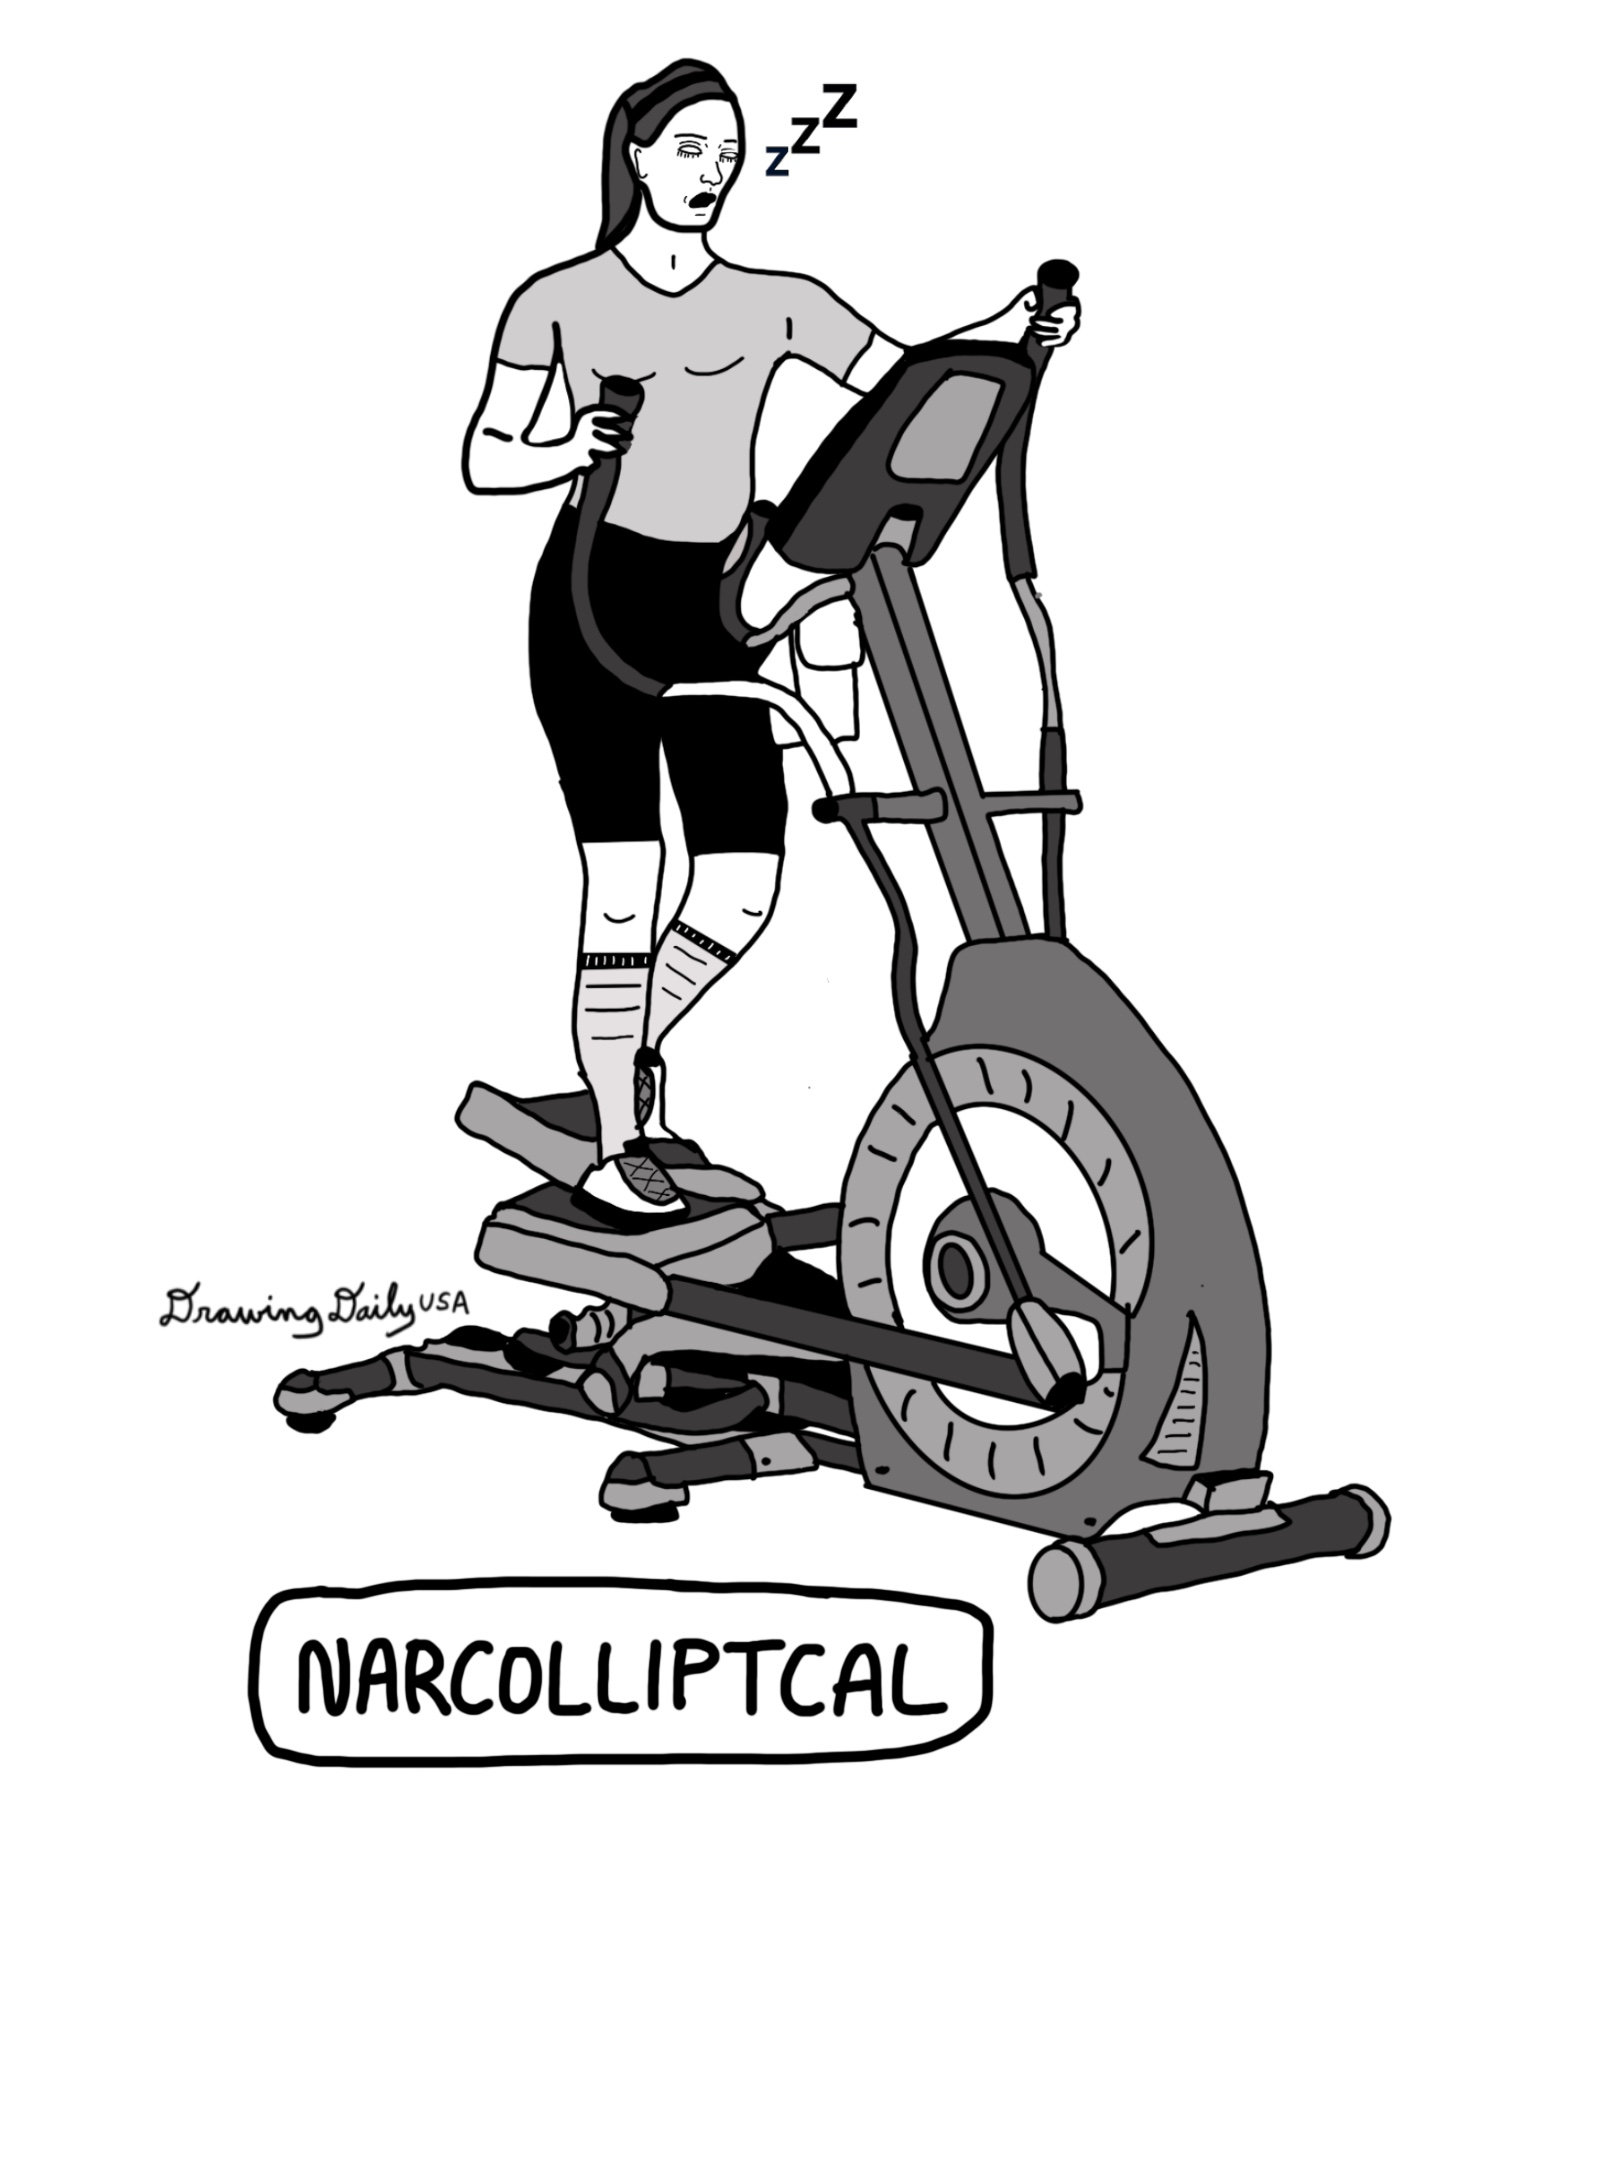 Narcolliptical